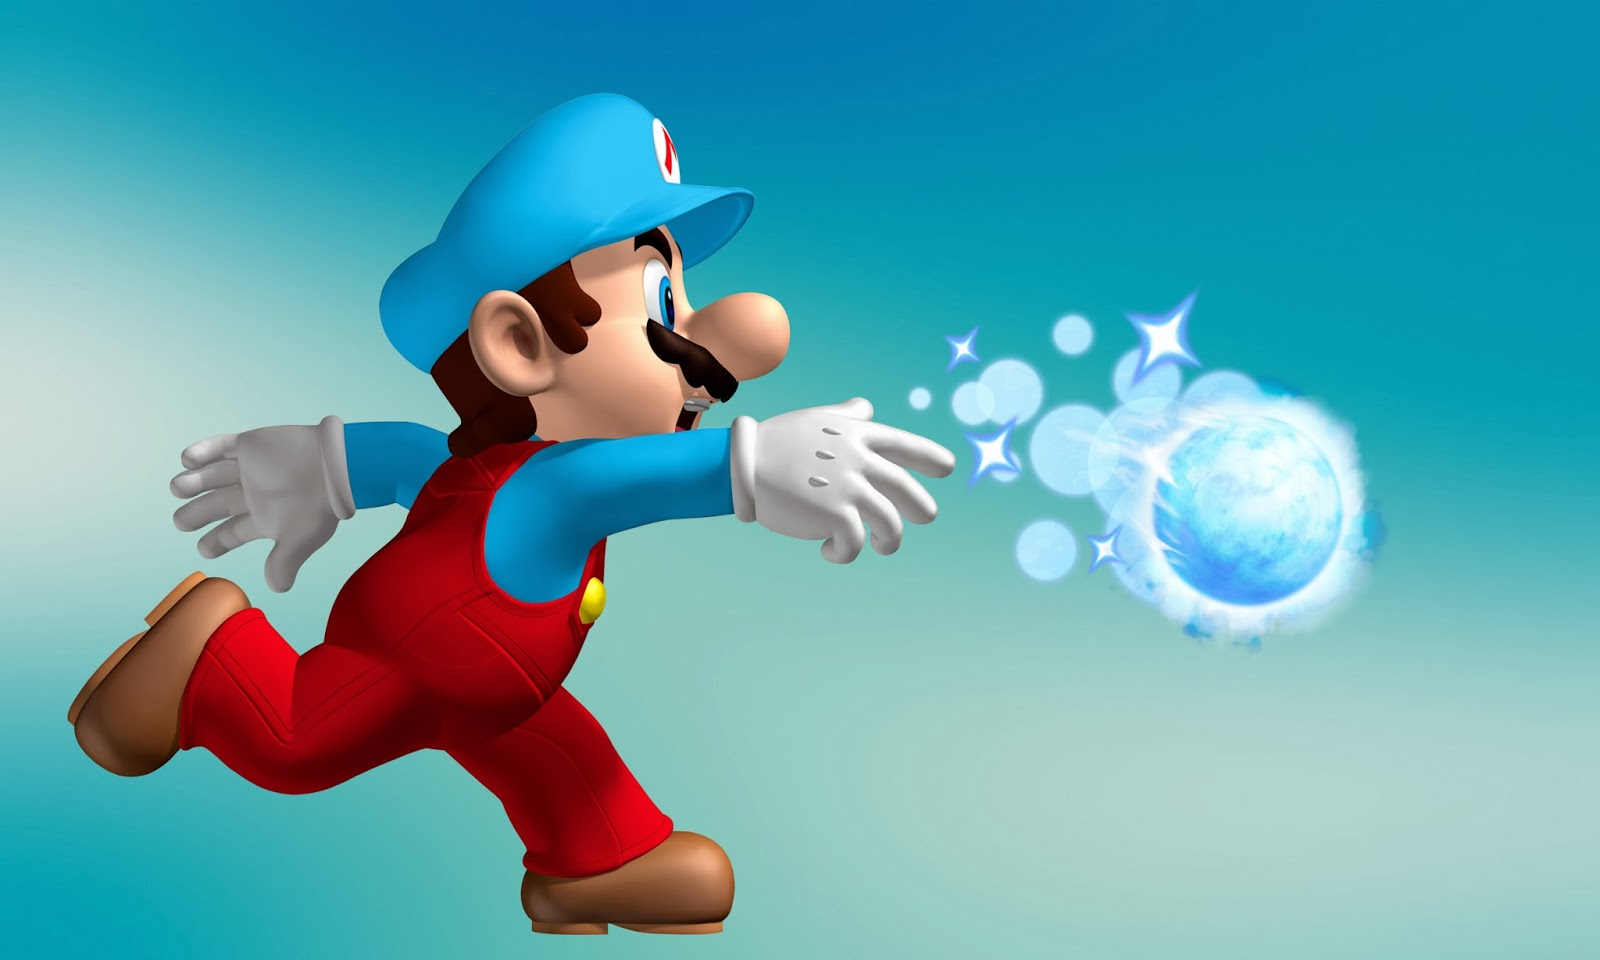 New Amazing Mario hd wallpaper Wallpaper